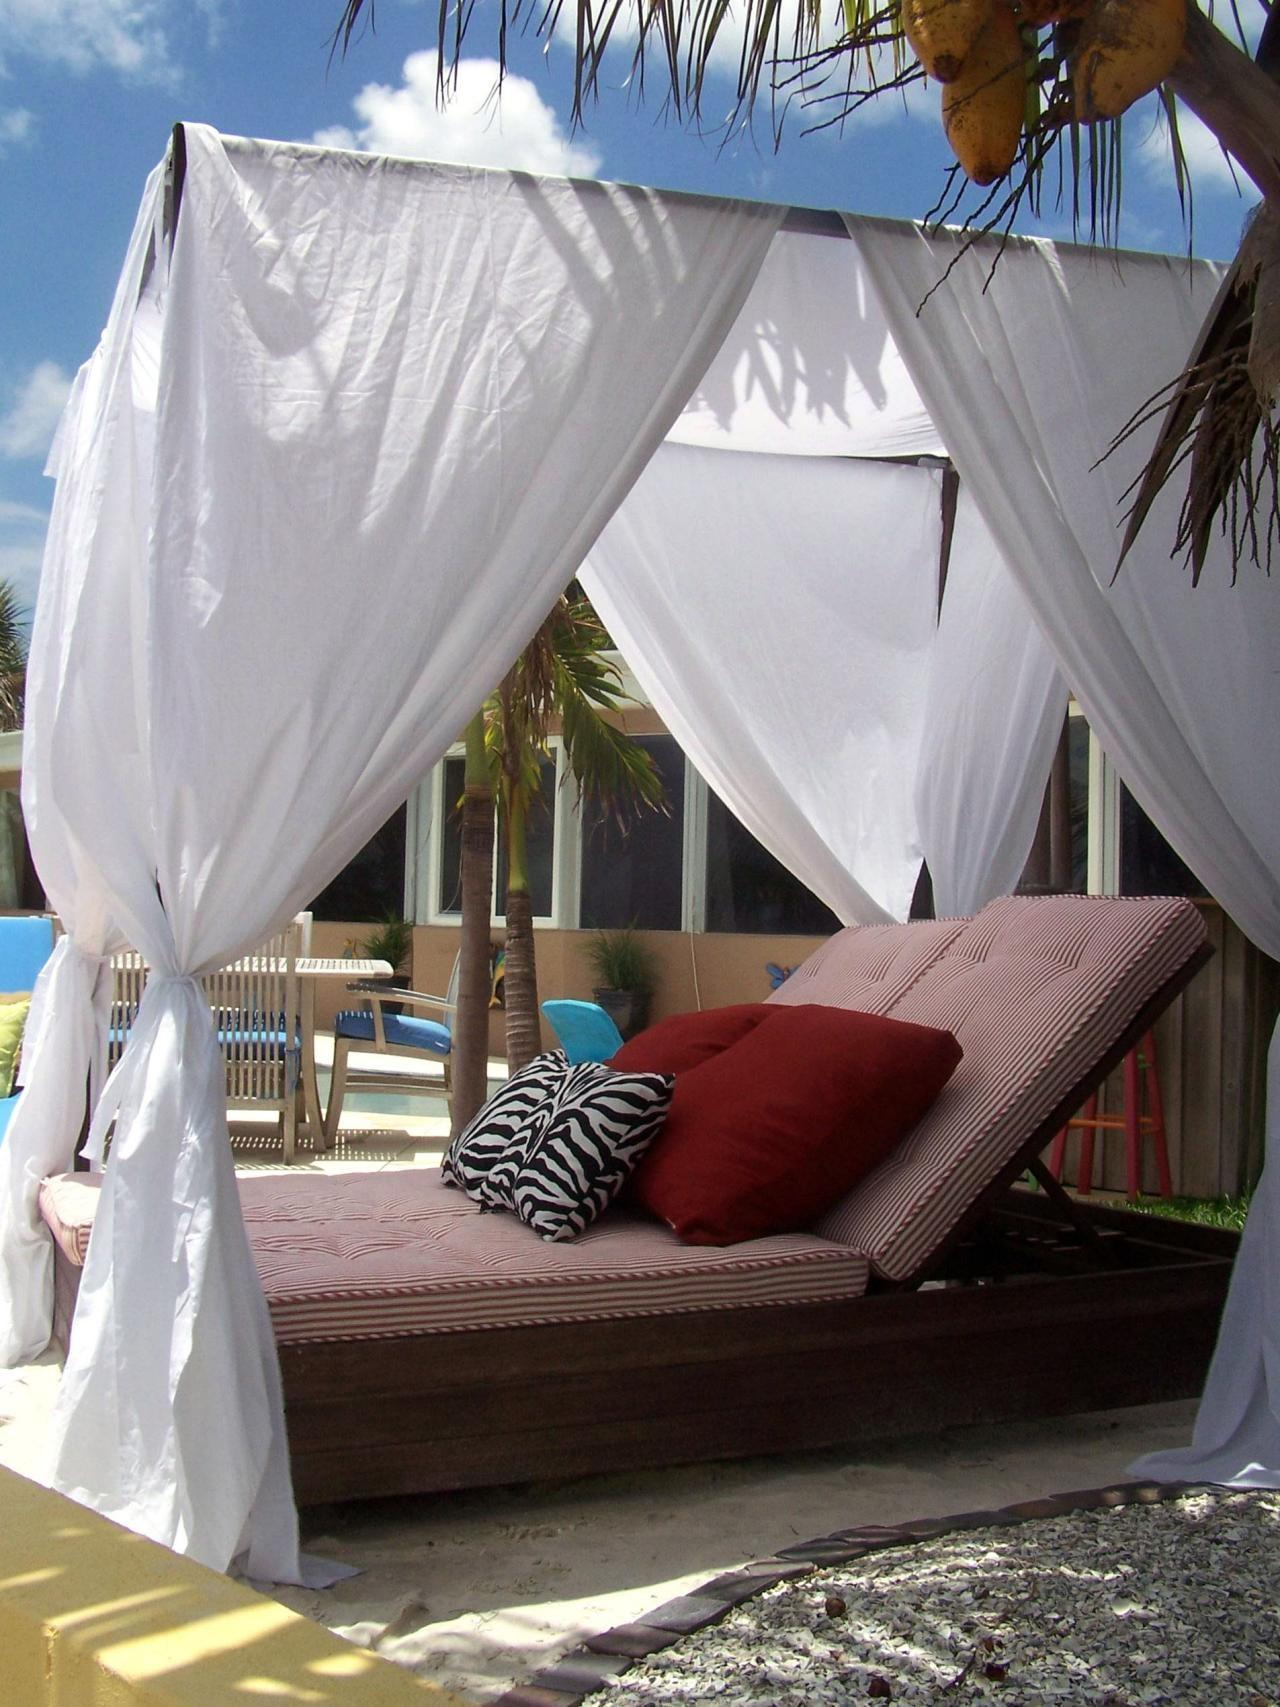 Favorite Rate Space Outdoor Rooms Budget